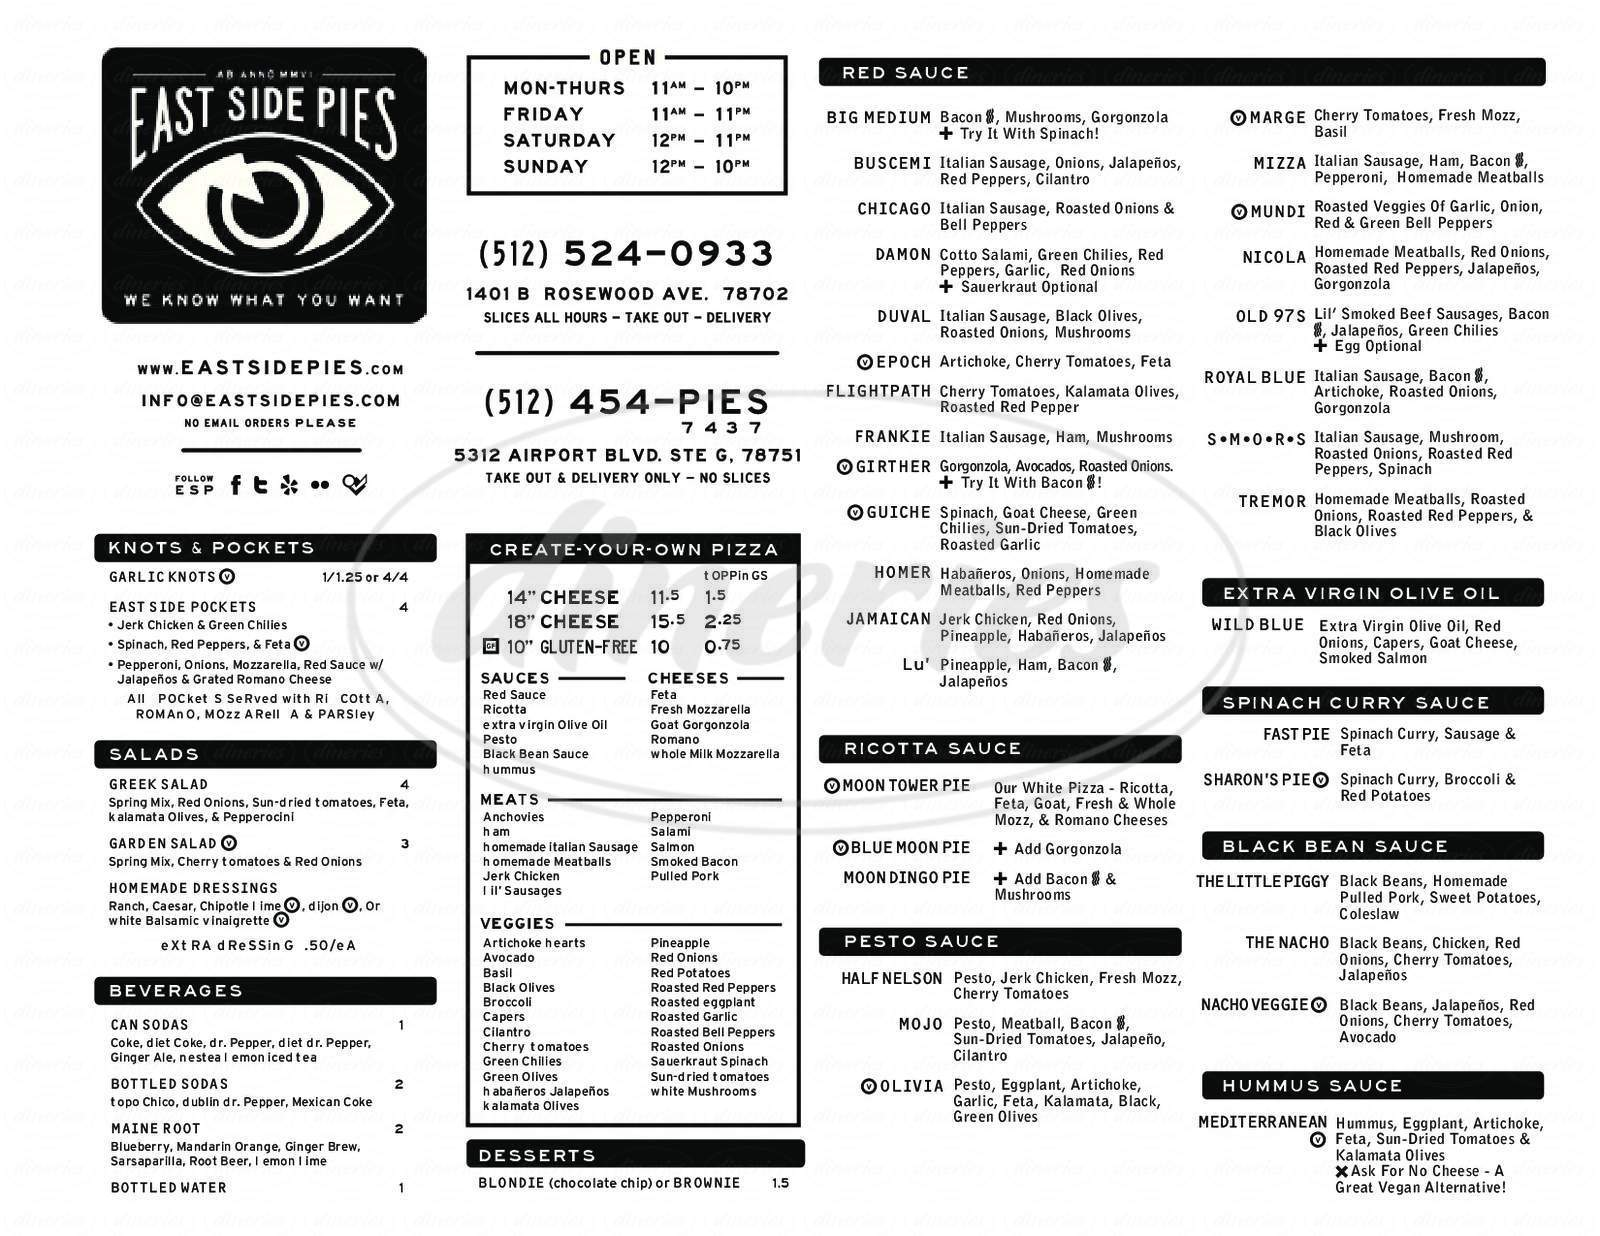 menu for East Side Pies Too!